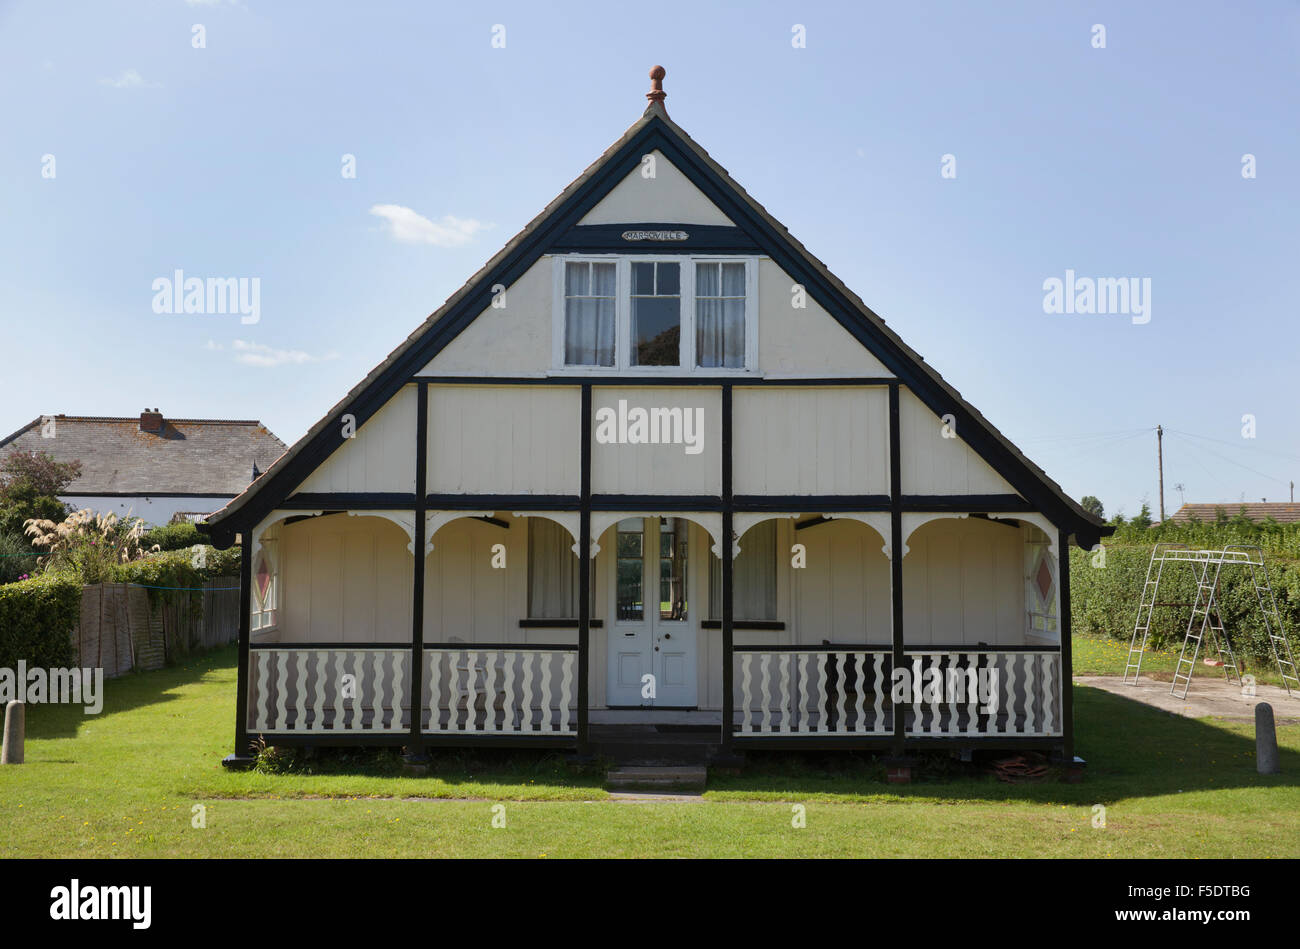 House made from Railway Carriages, Sutton on Sea, Lincolnshire - Stock Image